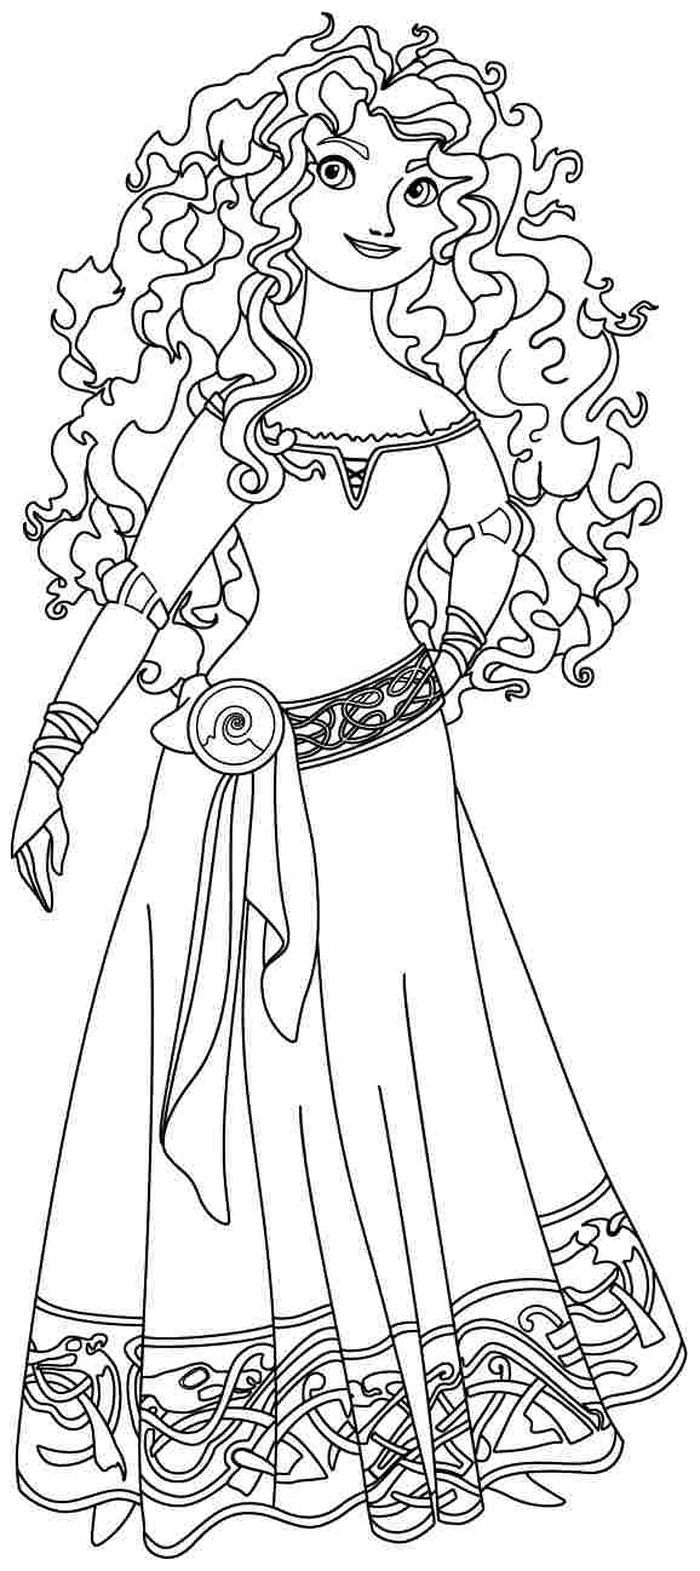 The Bravest Beautiful Merida Coloring Pages Free Coloring Sheets Disney Princess Coloring Pages Disney Coloring Pages Printables Disney Princess Colors